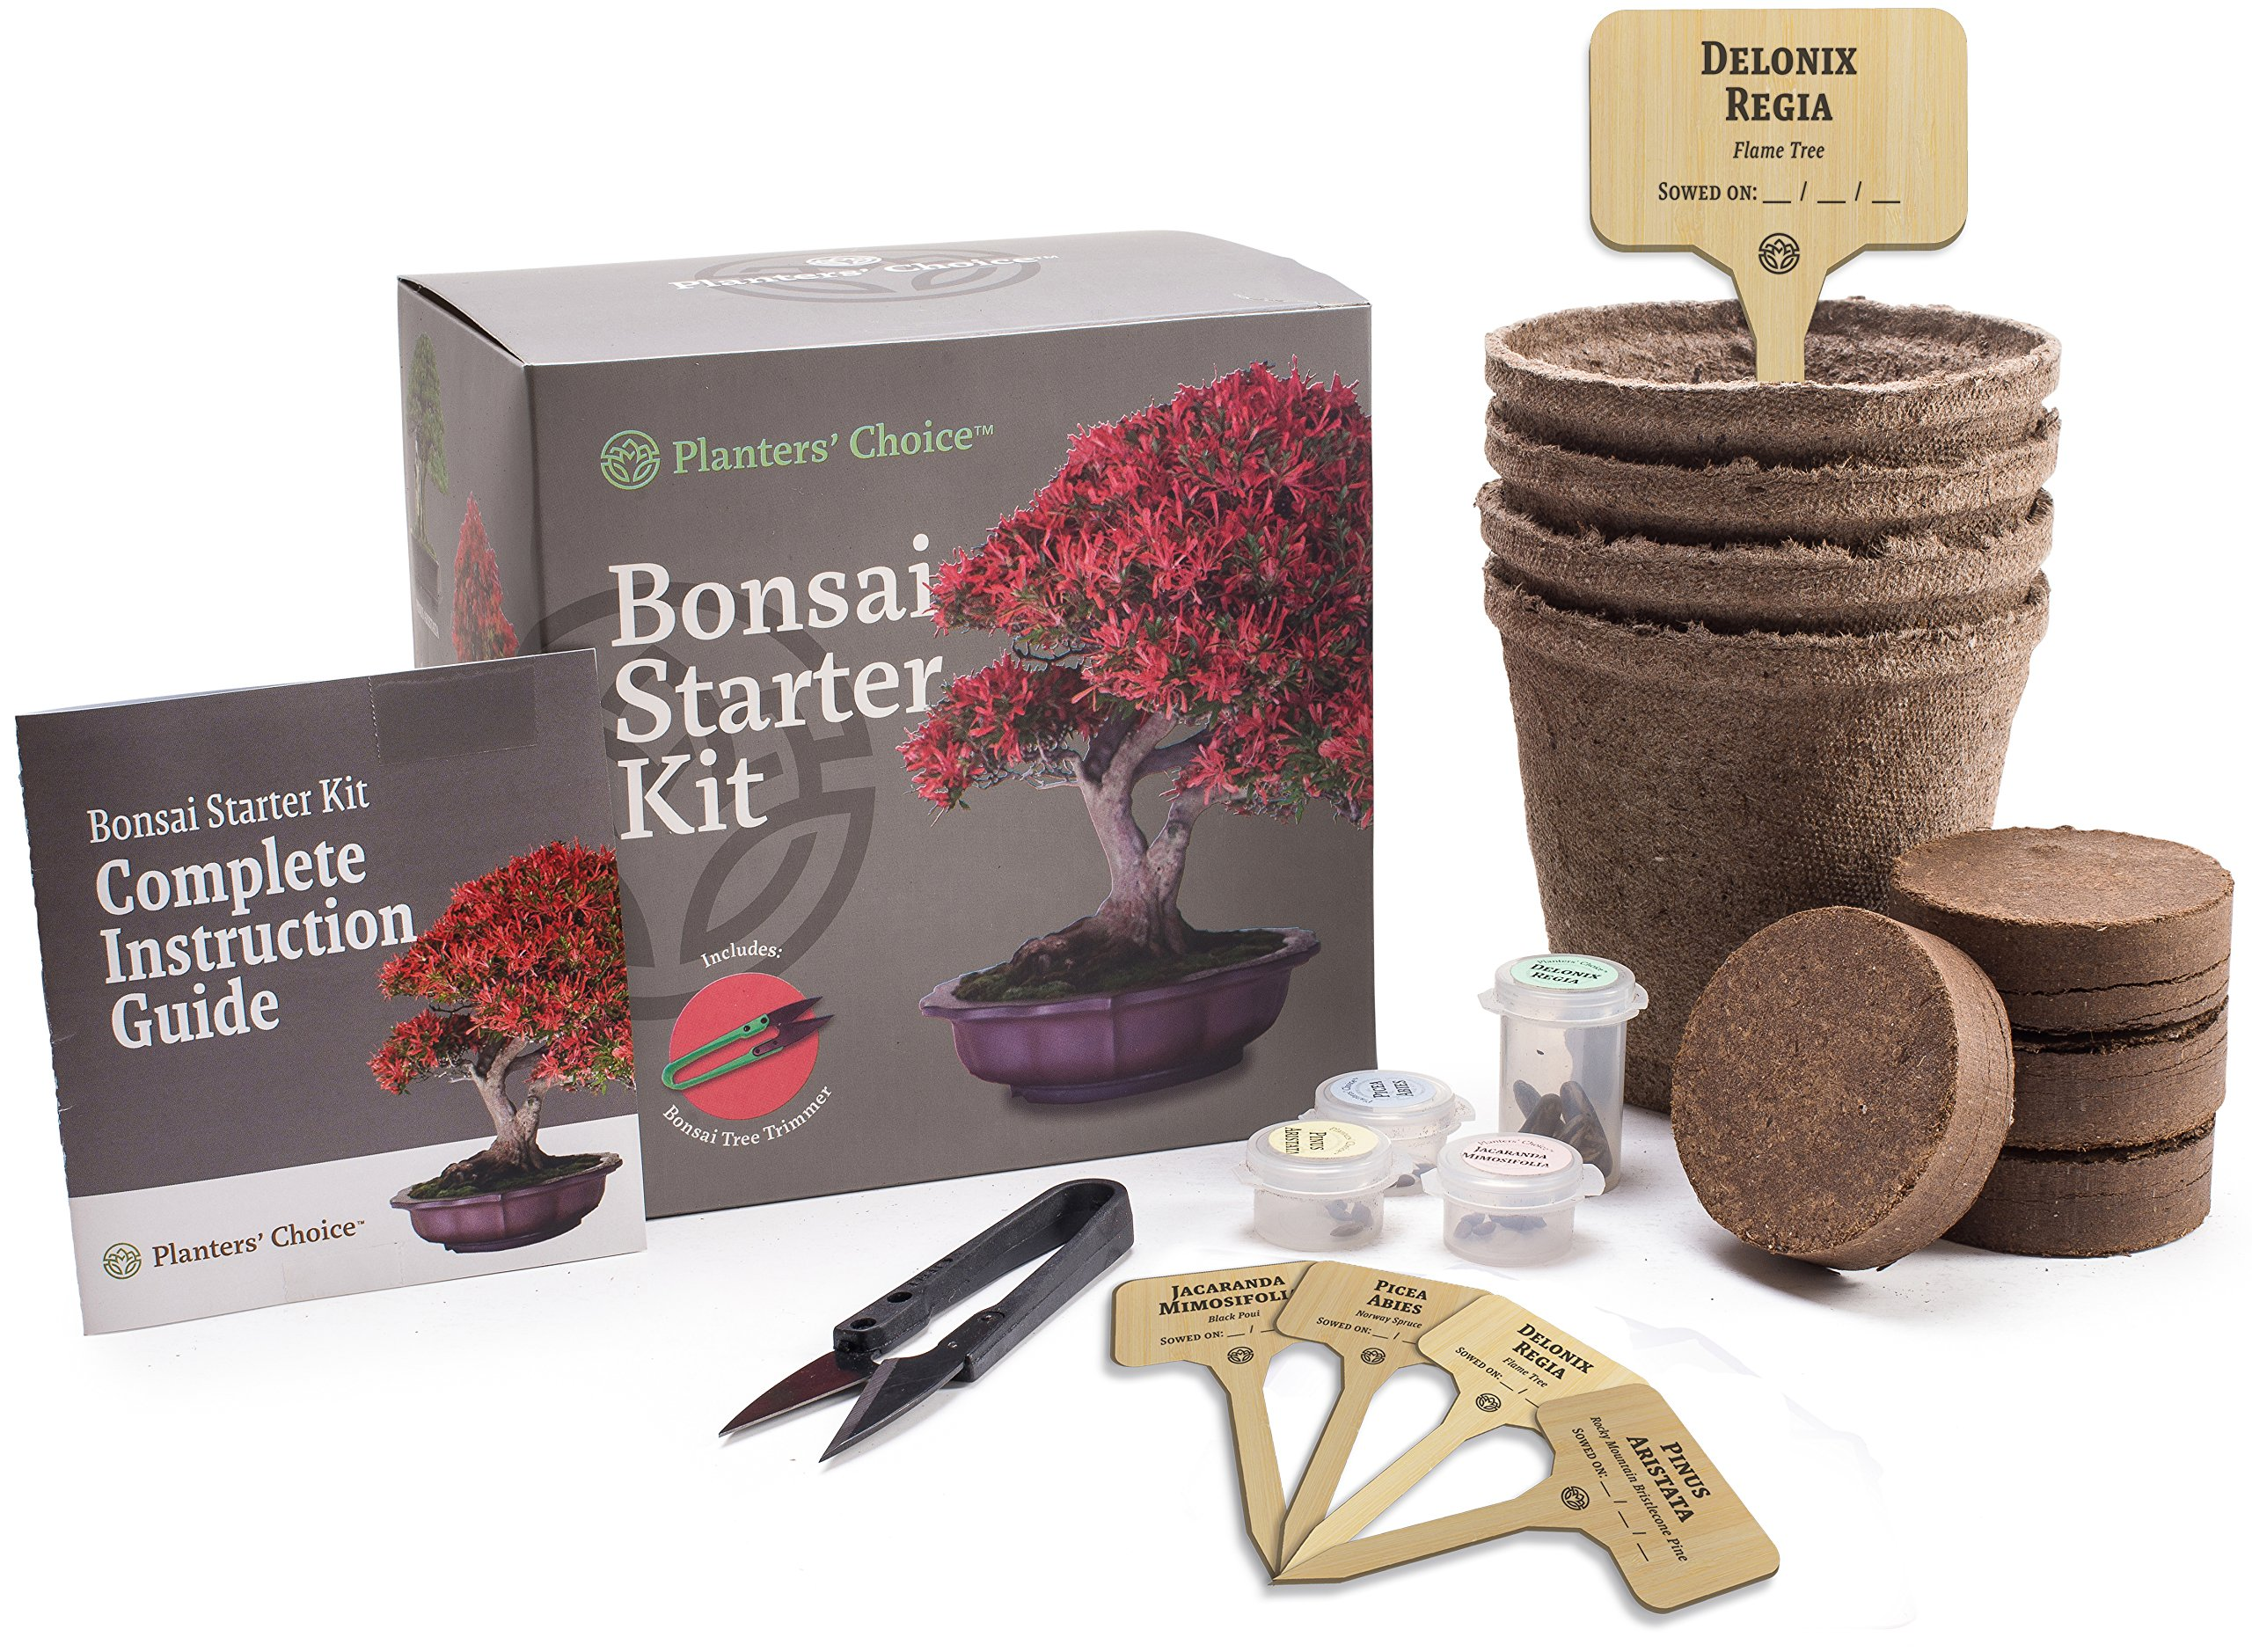 Plant Kits are great gift ideas for her